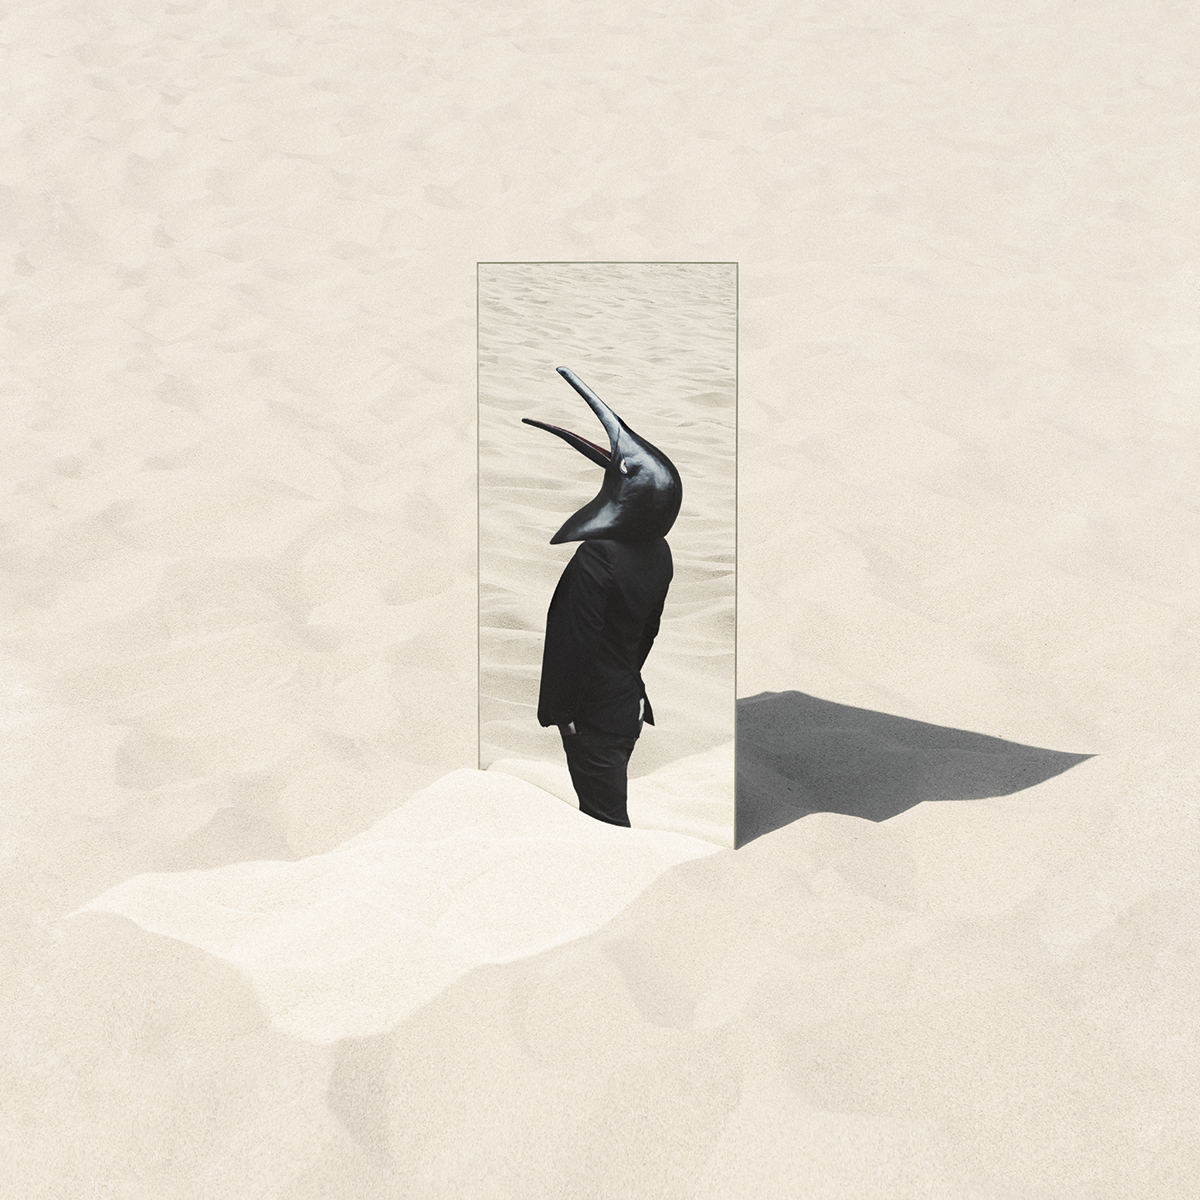 Penguin Cafe 'The Imperfect Sea'